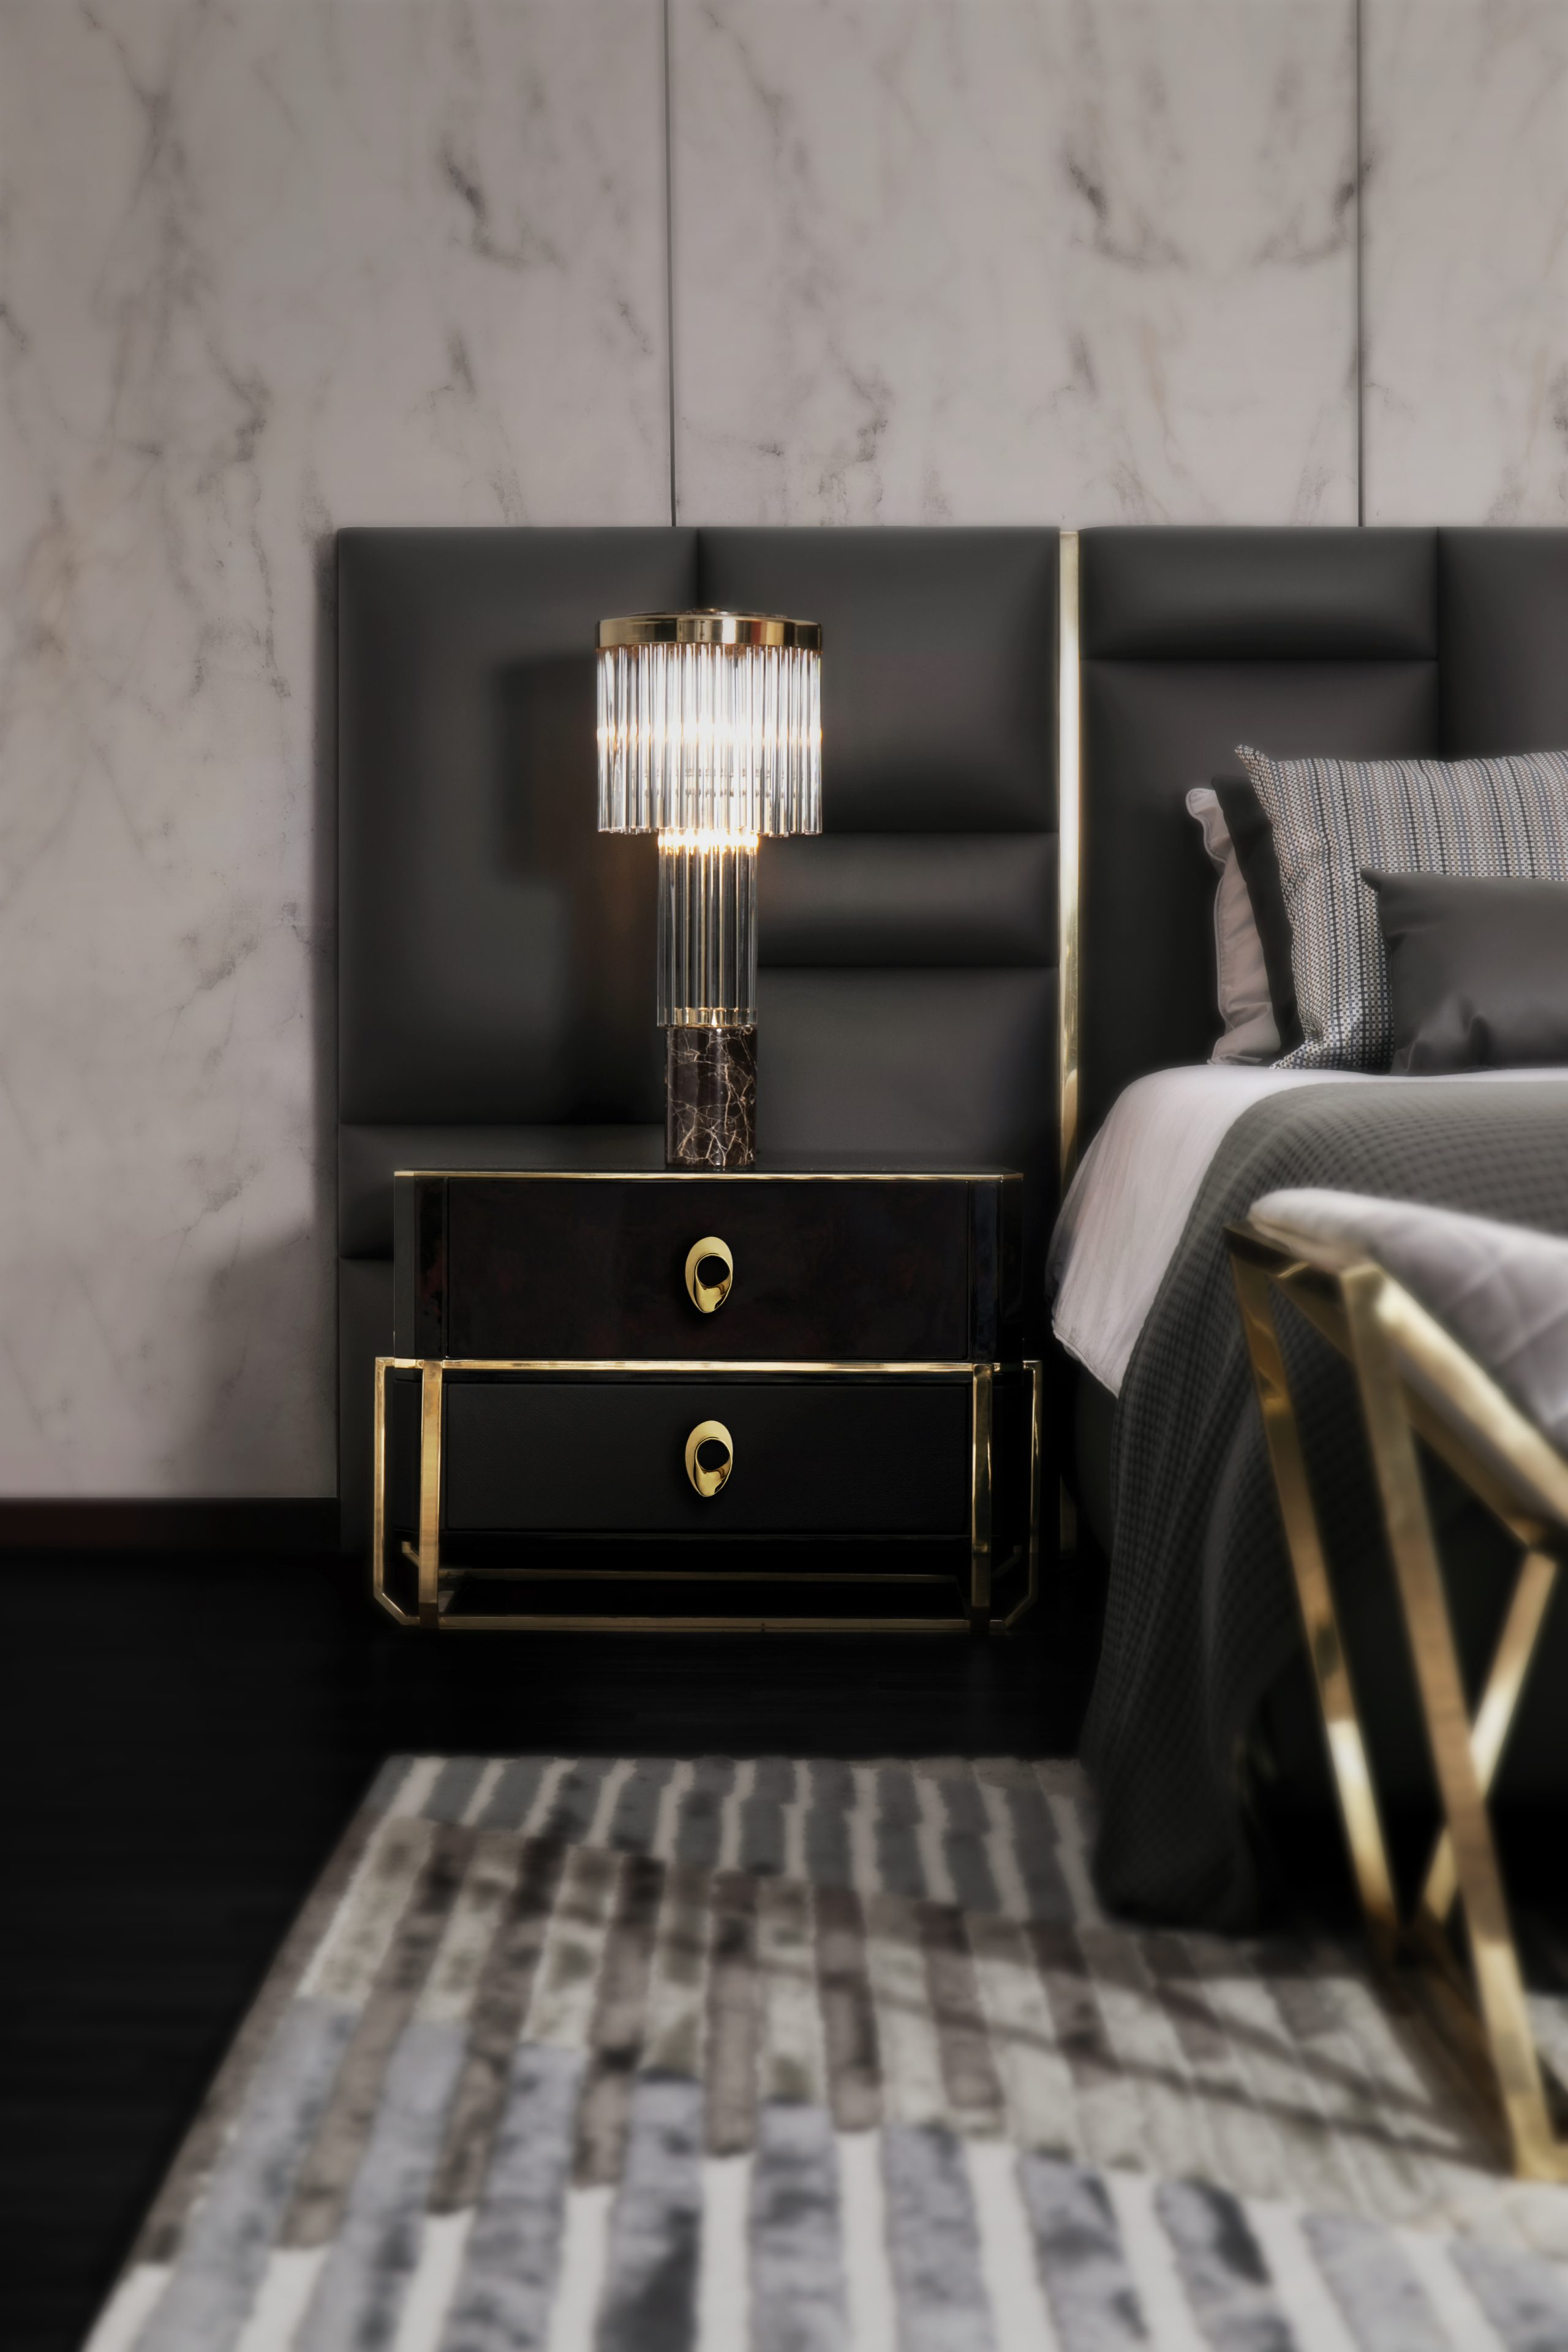 Historically Modern Design Style For Your Projects historically modern design style for your projects Historically Modern Design Style For Your Projects bedroom